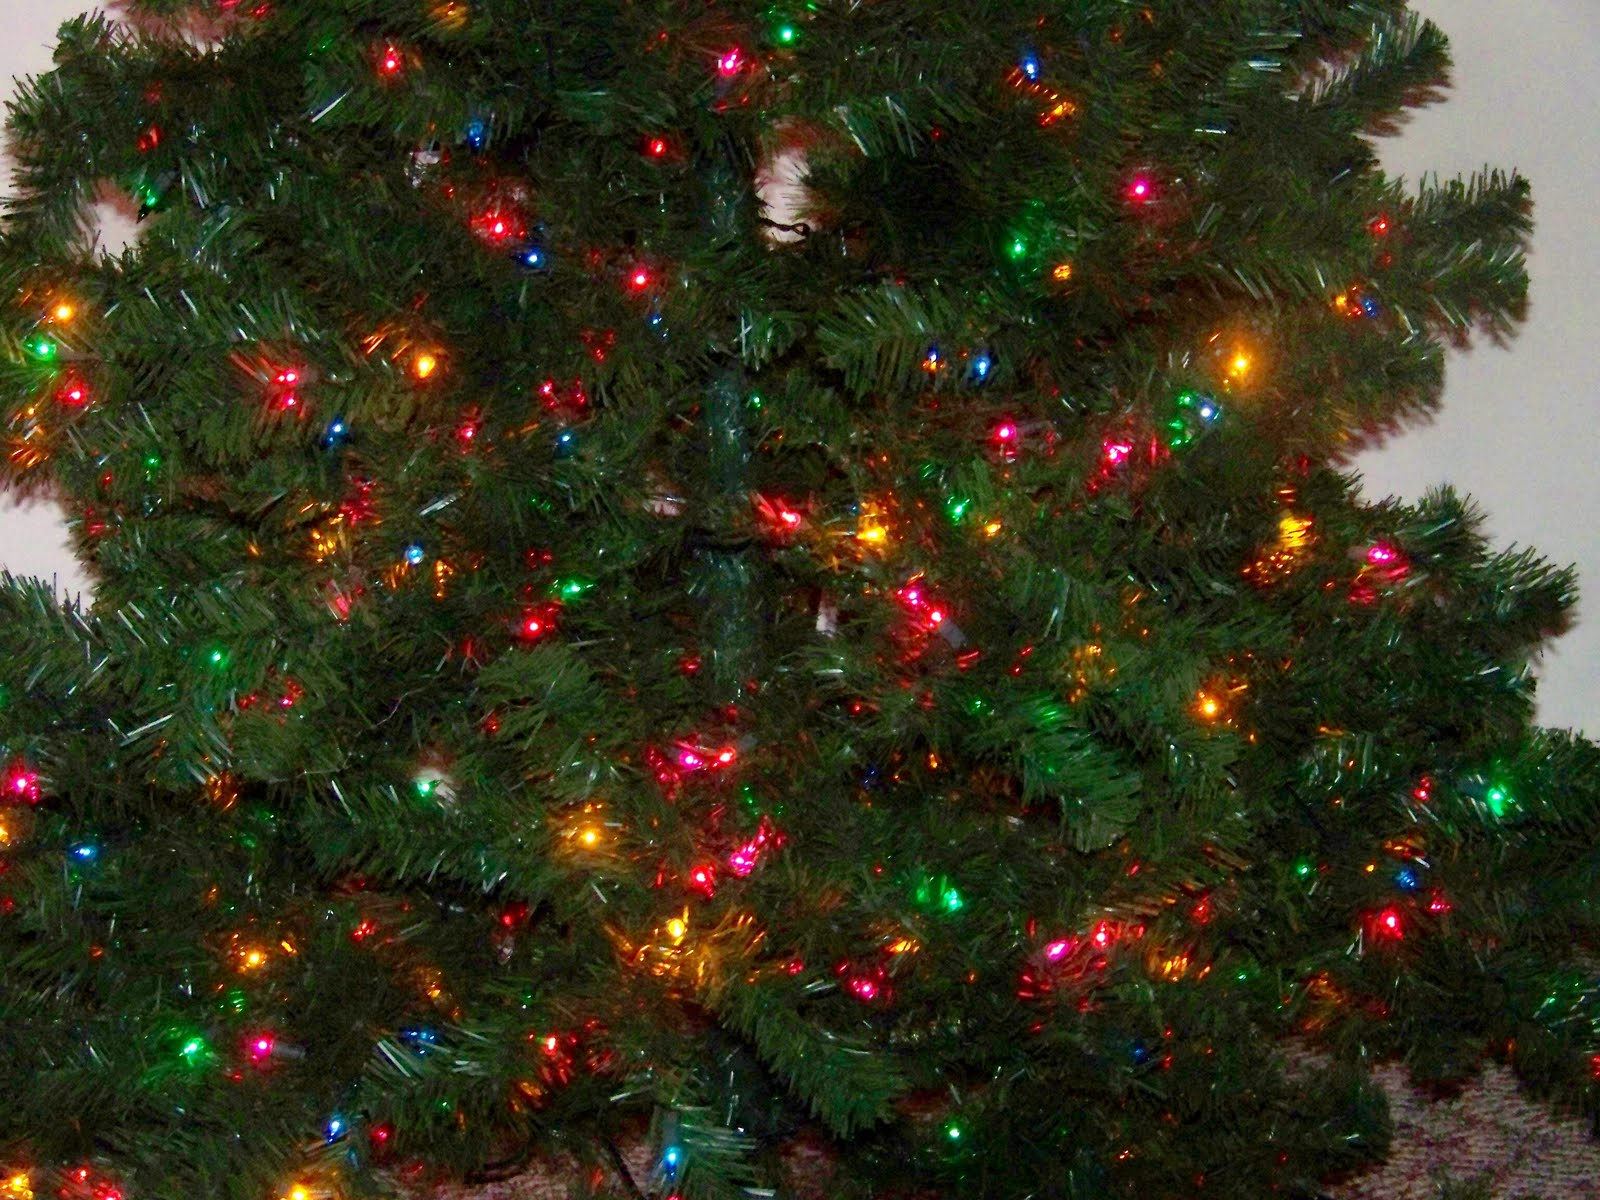 Hickery Holler Farm: O Christmas Tree